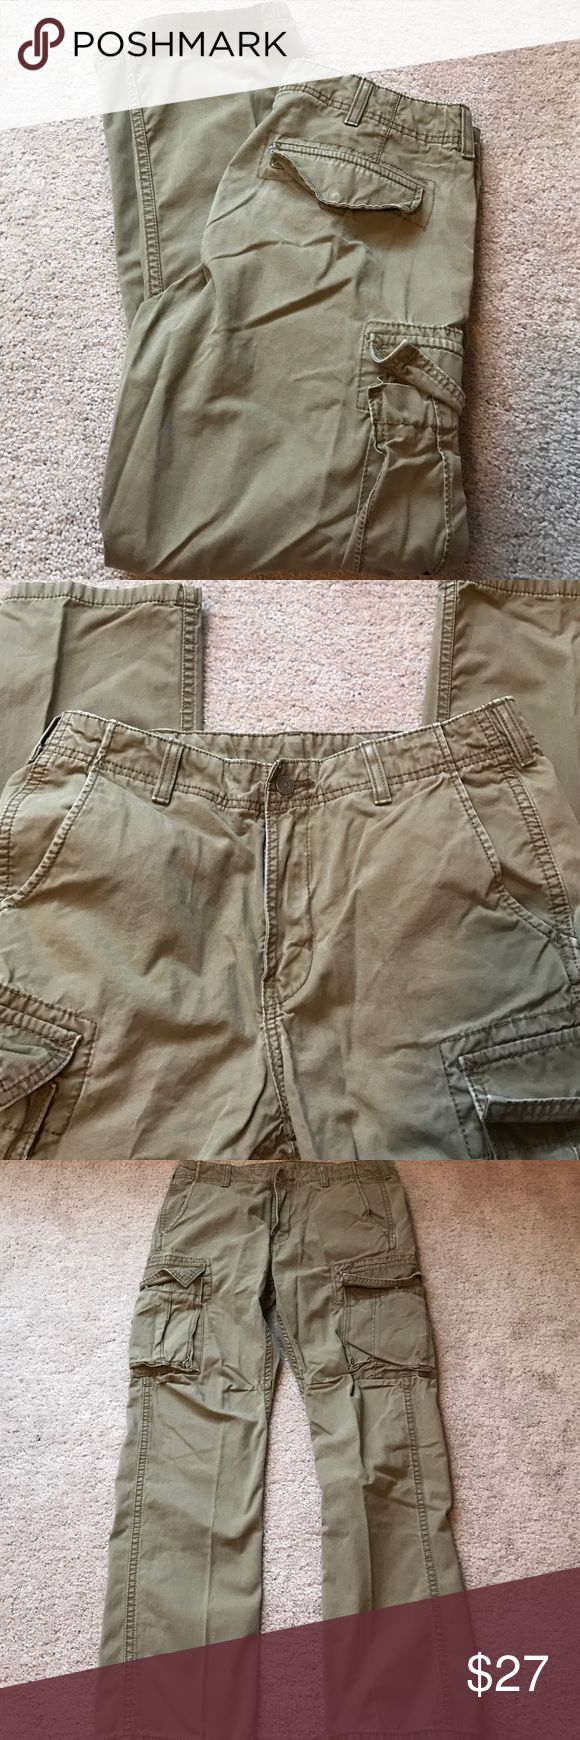 Mens Levi's- Loose Cargo Fit 30X30 Men's Levi's Loose Cargo fit..good condition..pockets snap closed..have been worn several times..make an offer :) Levi's Pants Cargo